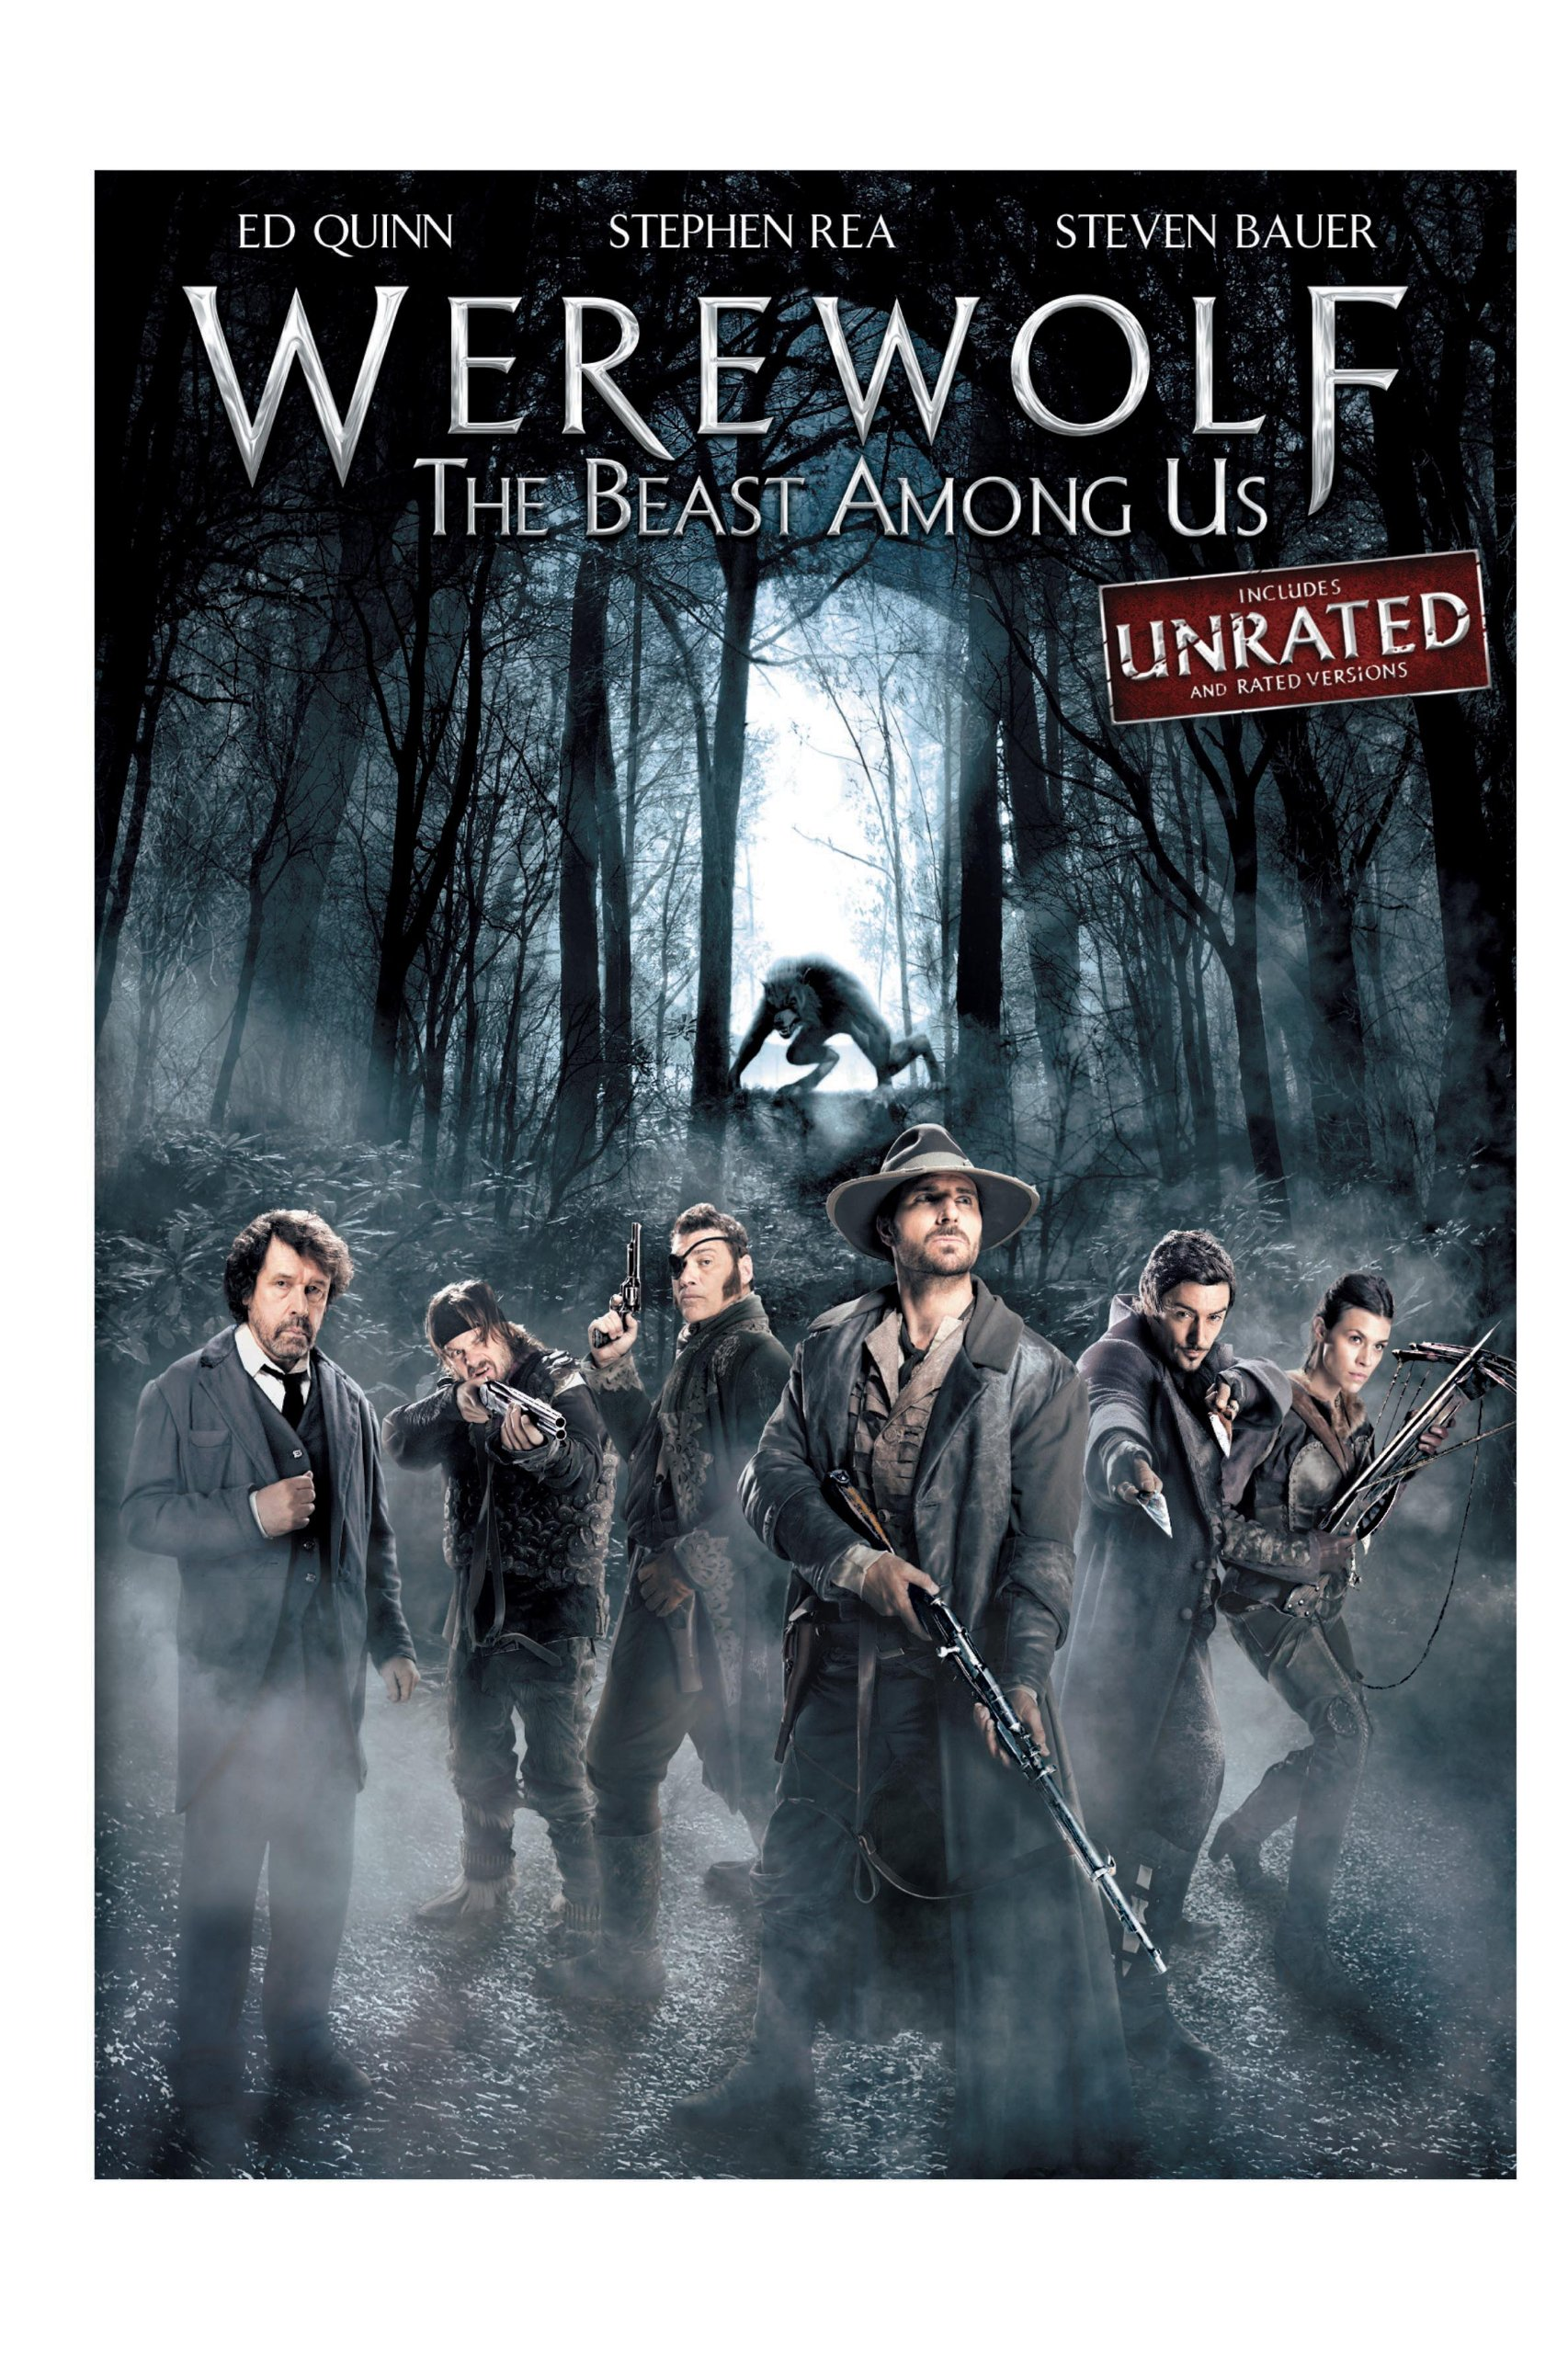 DVD : Werewolf: The Beast Among Us (Dubbed, AC-3, Dolby, Snap Case, Unrated Version)